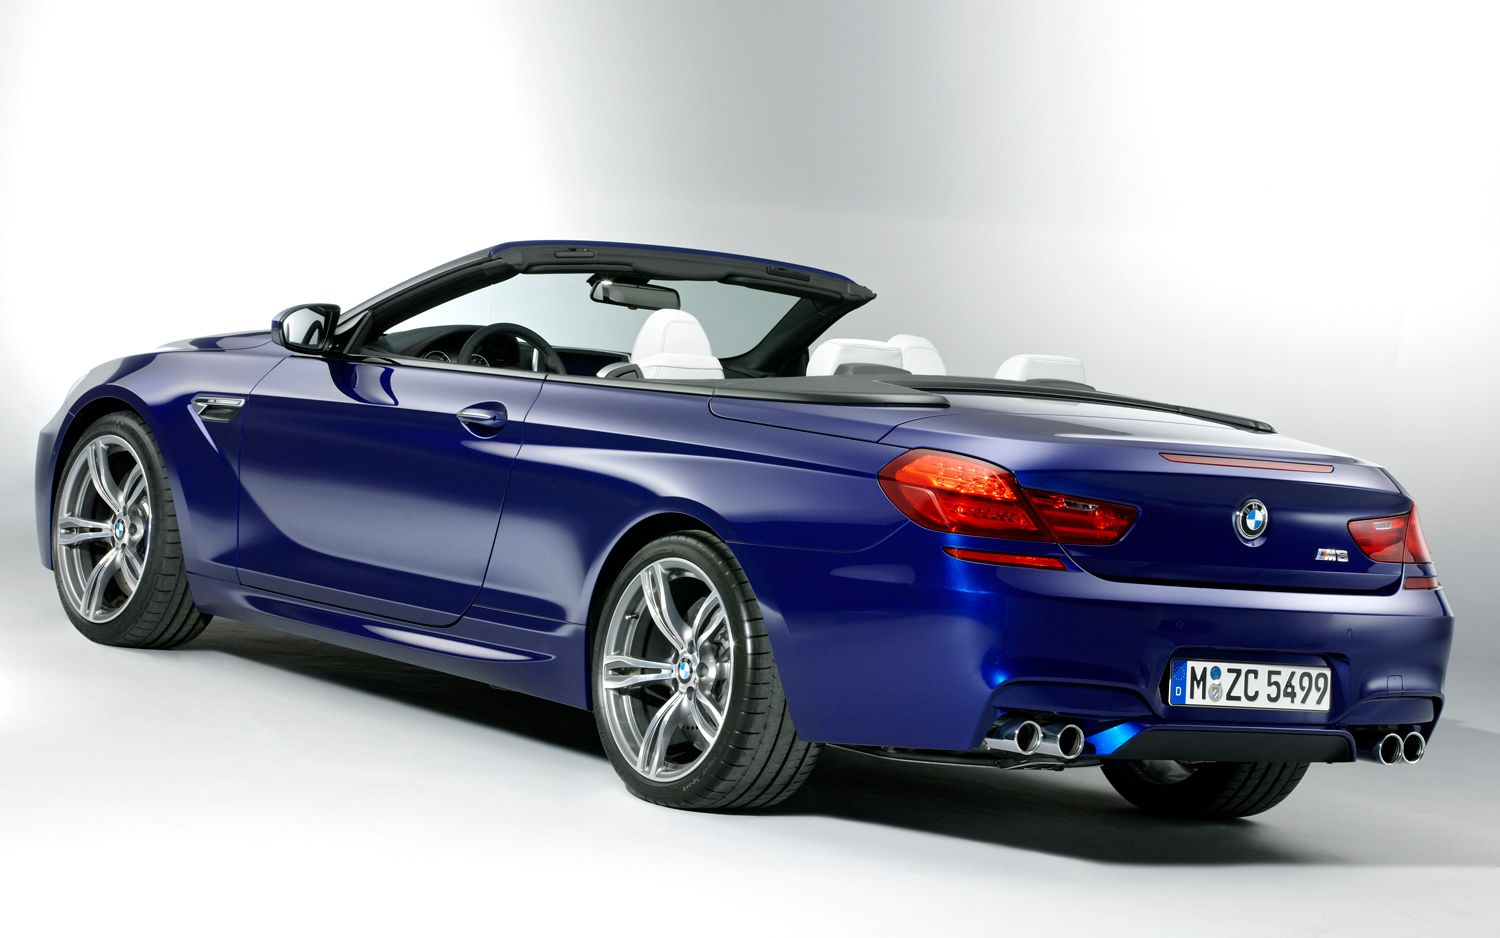 Feature Flick Test Driving The BMW M6 Convertible And Audi A3